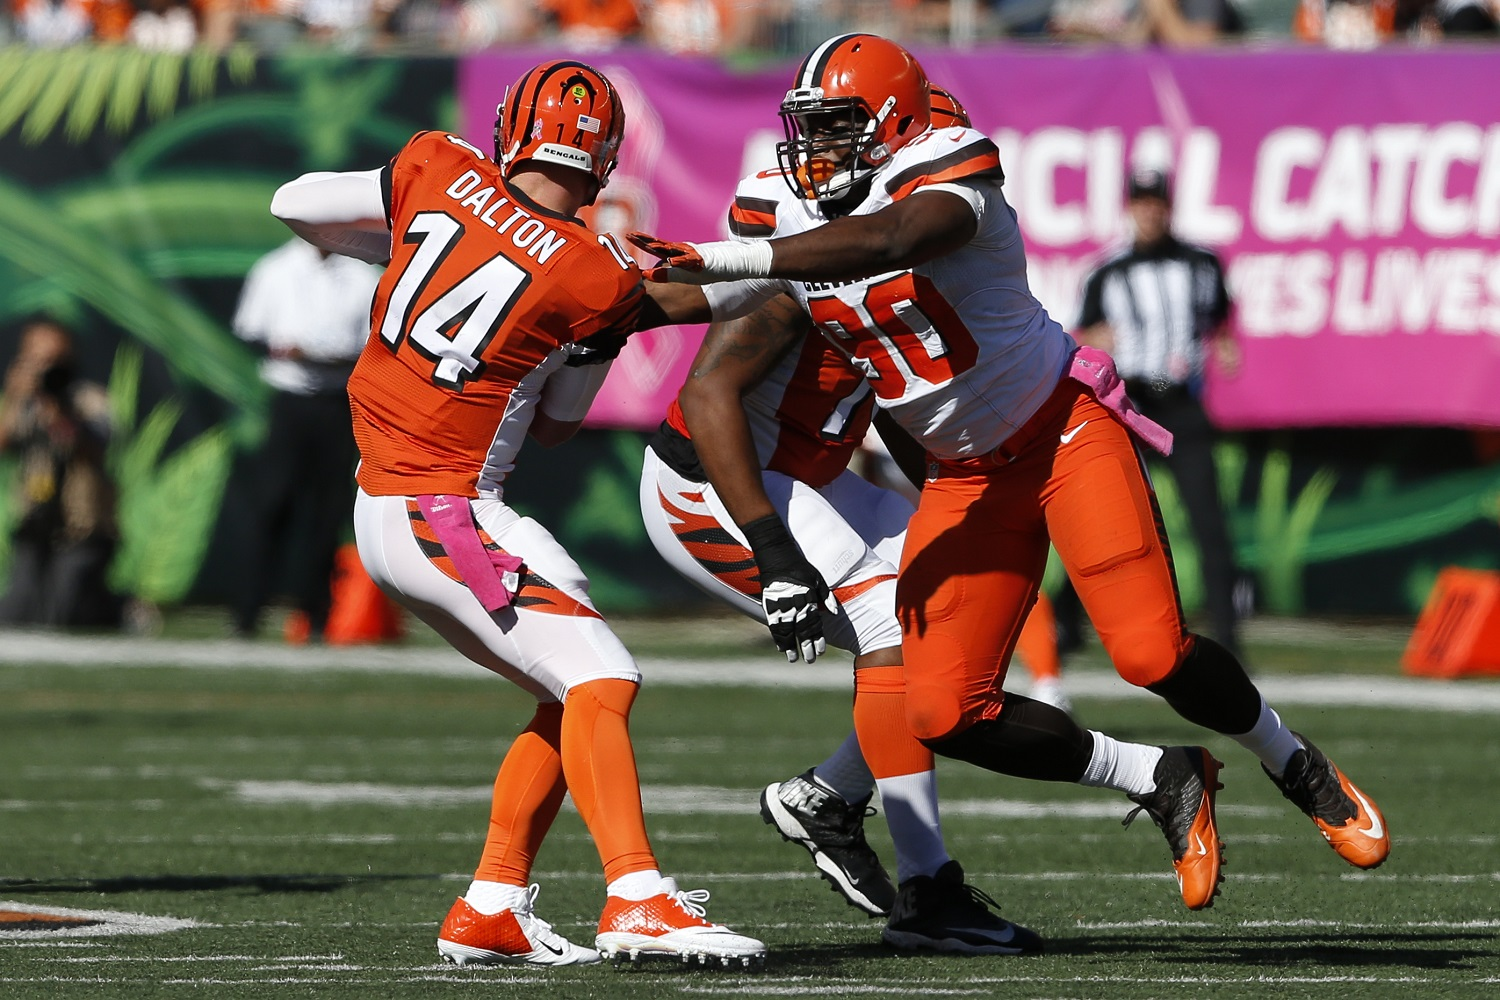 Cincinnati Bengals quarterback Andy Dalton (14) is sacked by Cleveland Browns outside linebacker Emmanuel Ogbah (90) in the first half of an NFL football game, Sunday, Oct. 23, 2016, in Cincinnati. (AP Photo/Gary Landers)